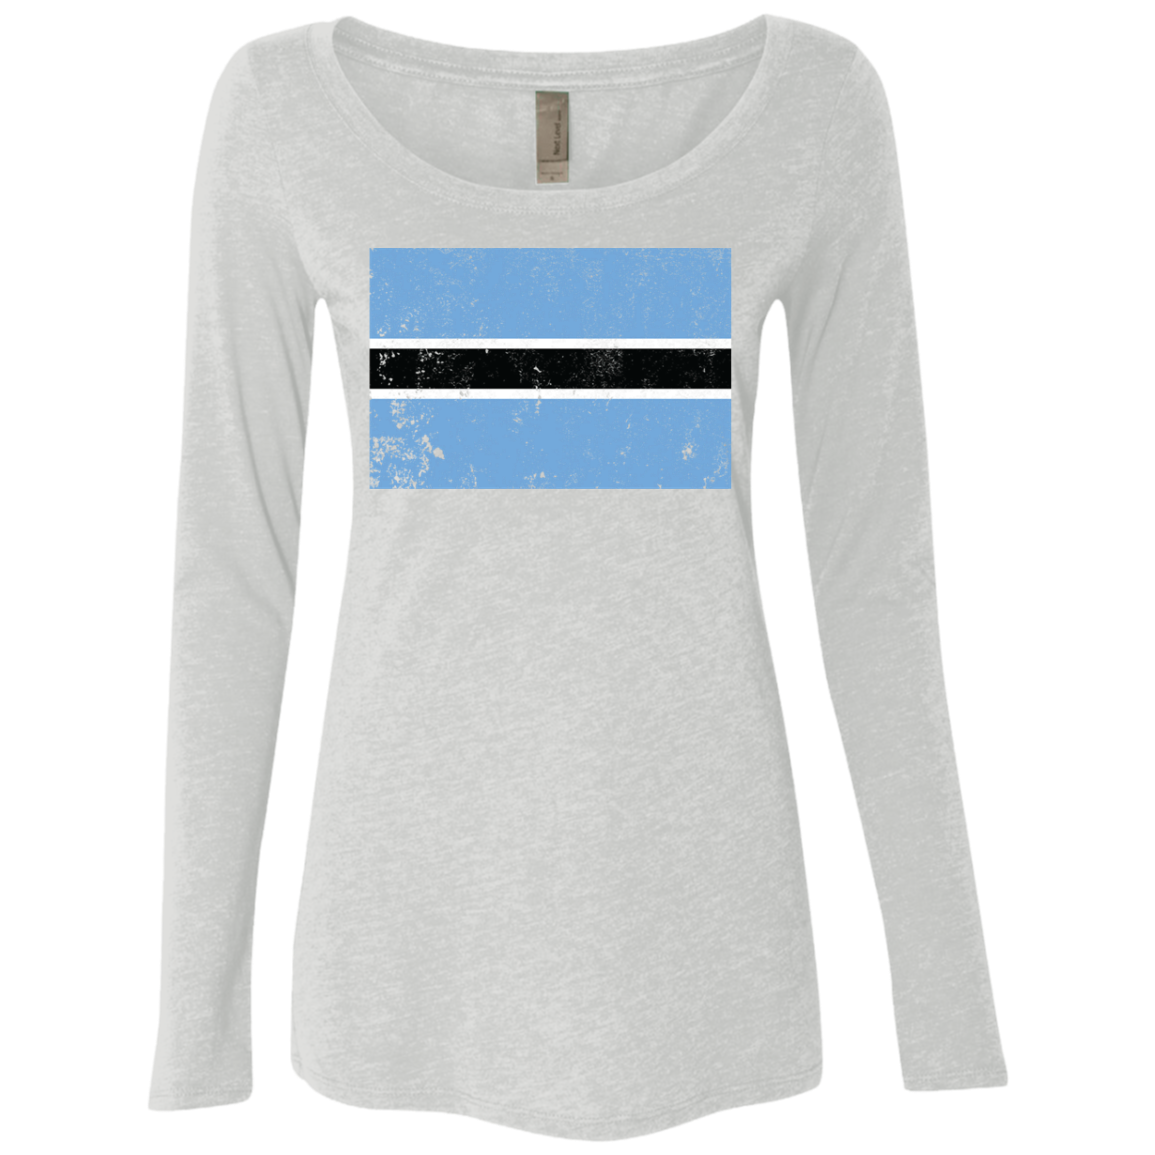 Botswana Women's Long Sleeve Tee